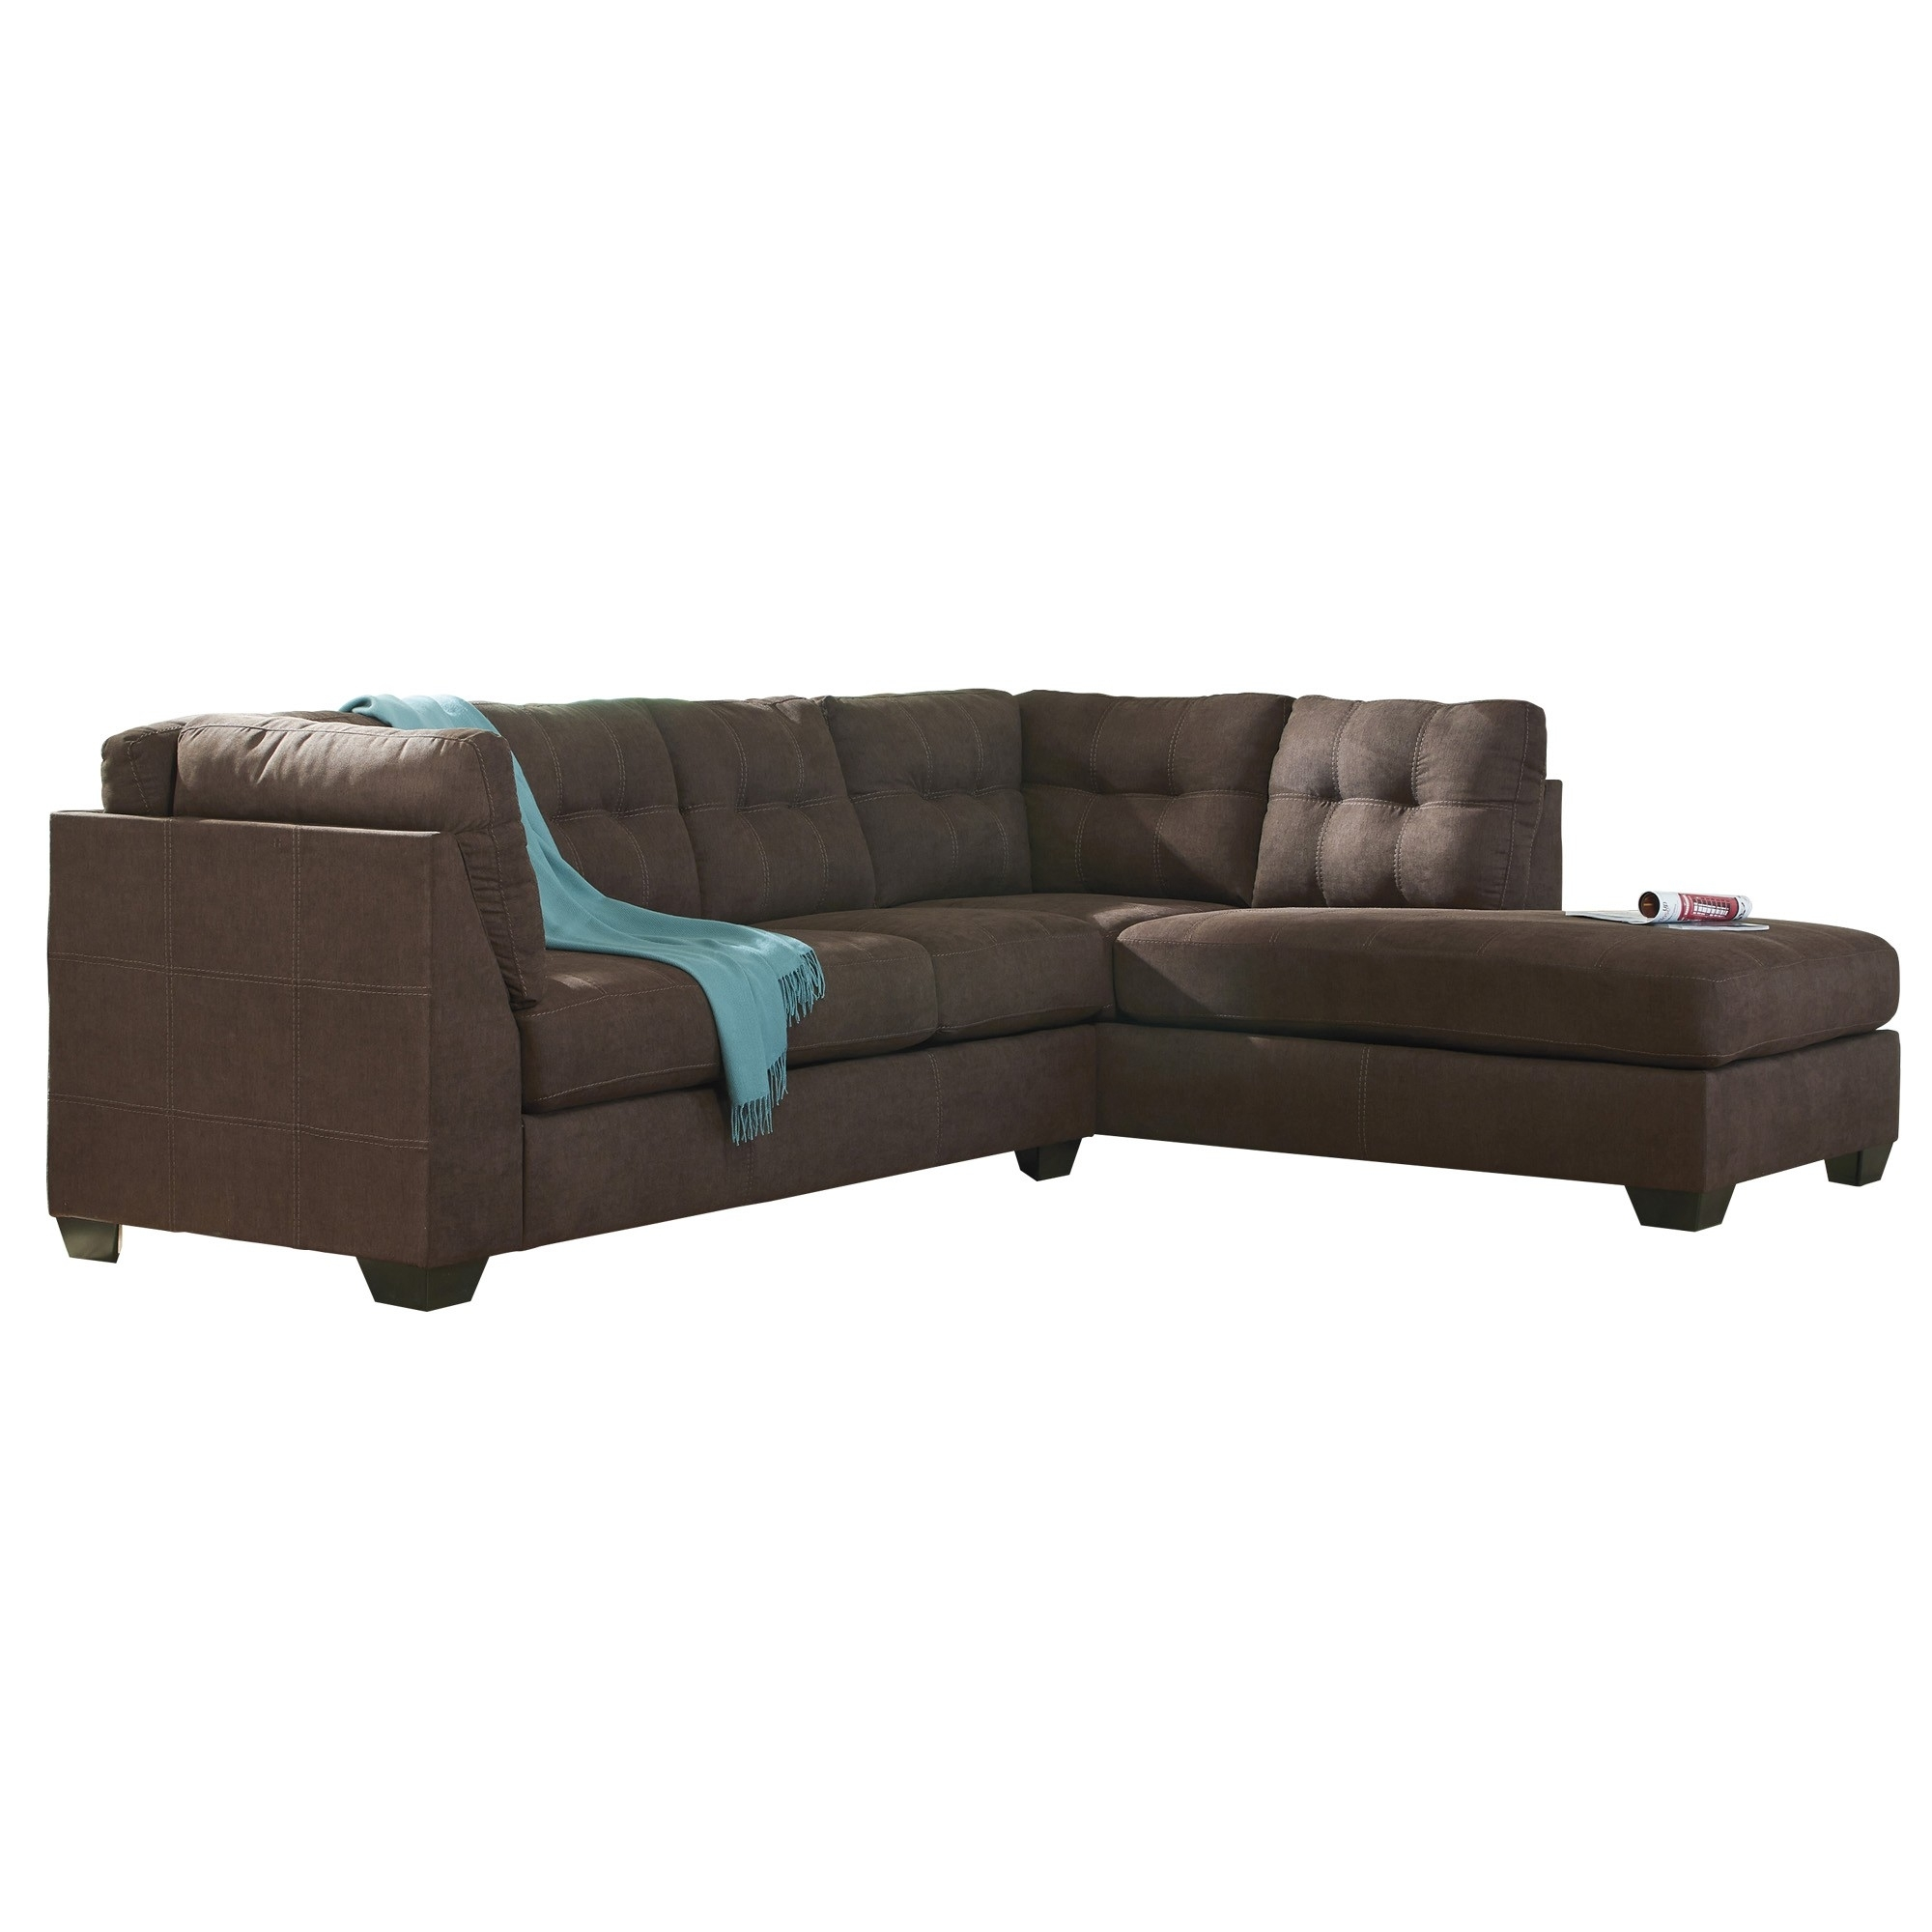 Sectionals | Tepperman's For Teppermans Sectional Sofas (Image 7 of 10)